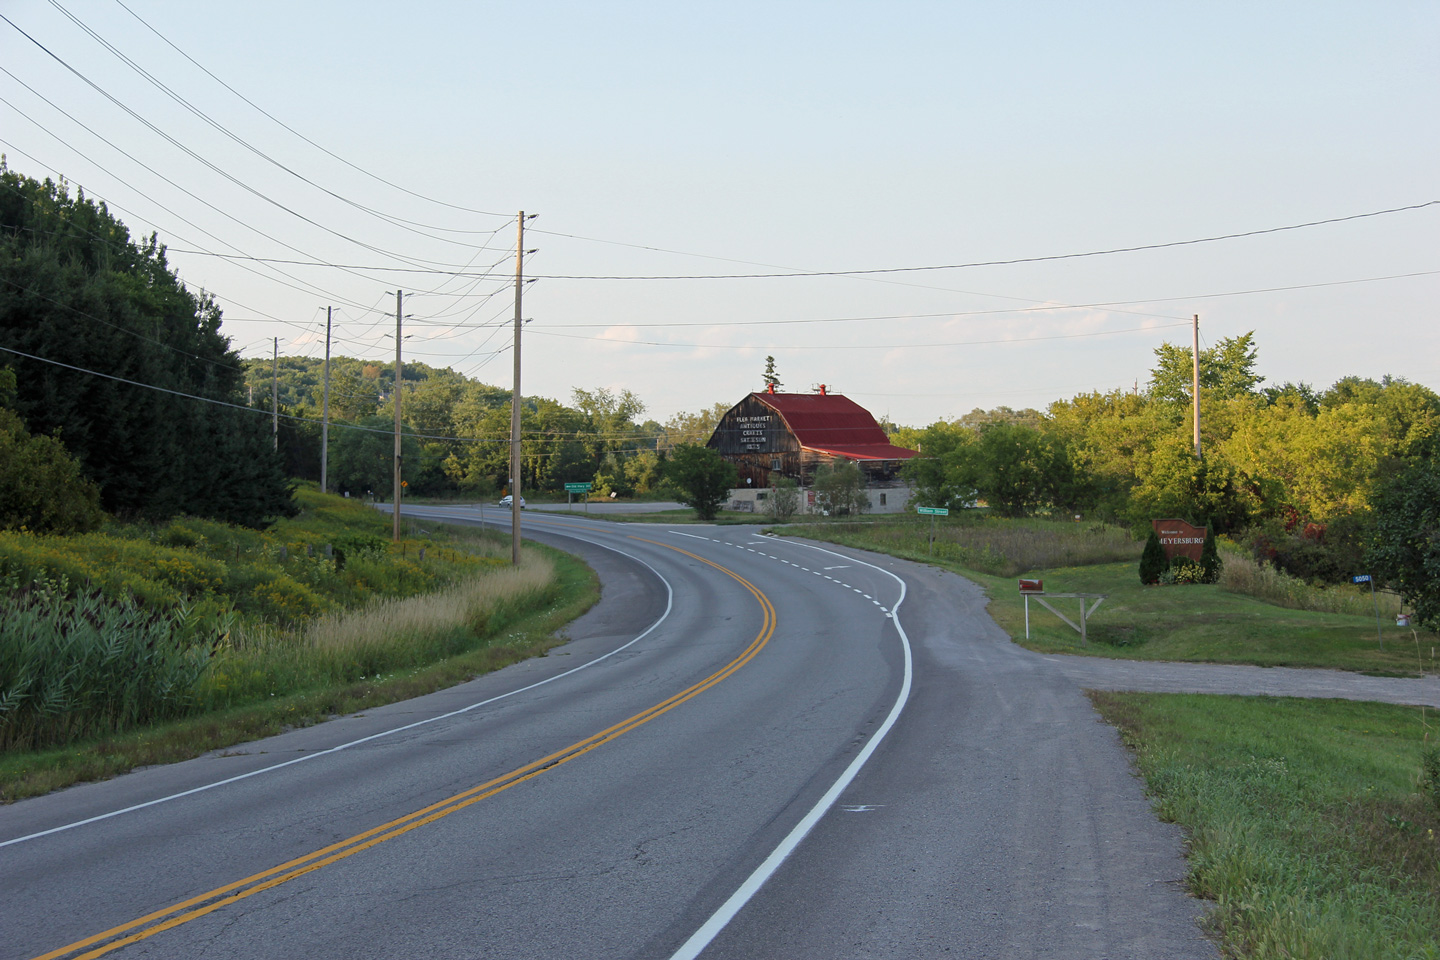 King's Highway 30 - Images